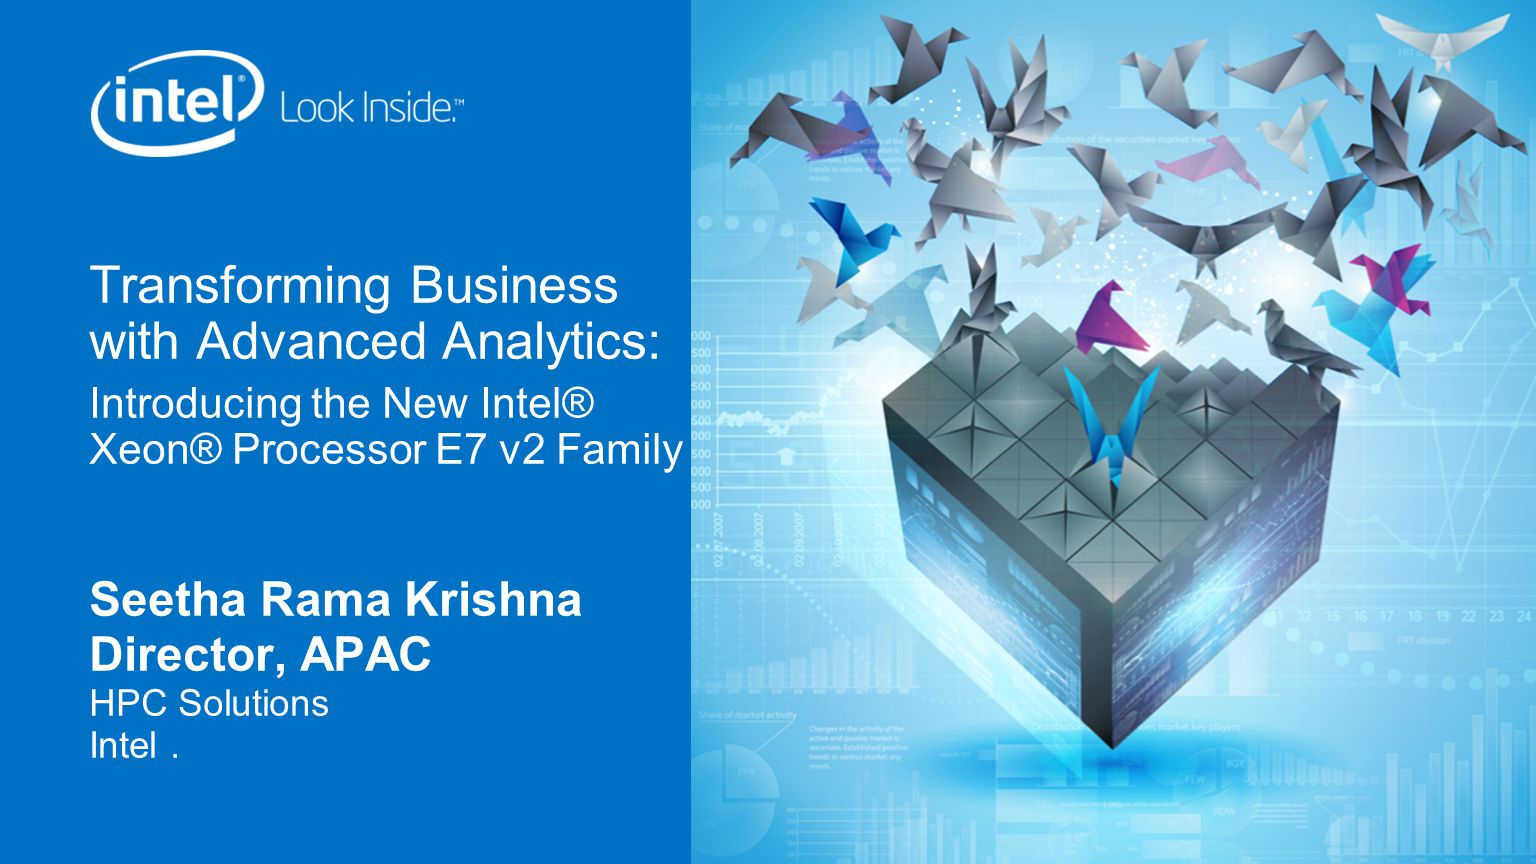 Transforming Business with Advanced Analytics: Introducing the New Intel® Xeon® Processor E7 v2 Family Seetha Rama Krishna Director, APAC HPC Solutions Intel.